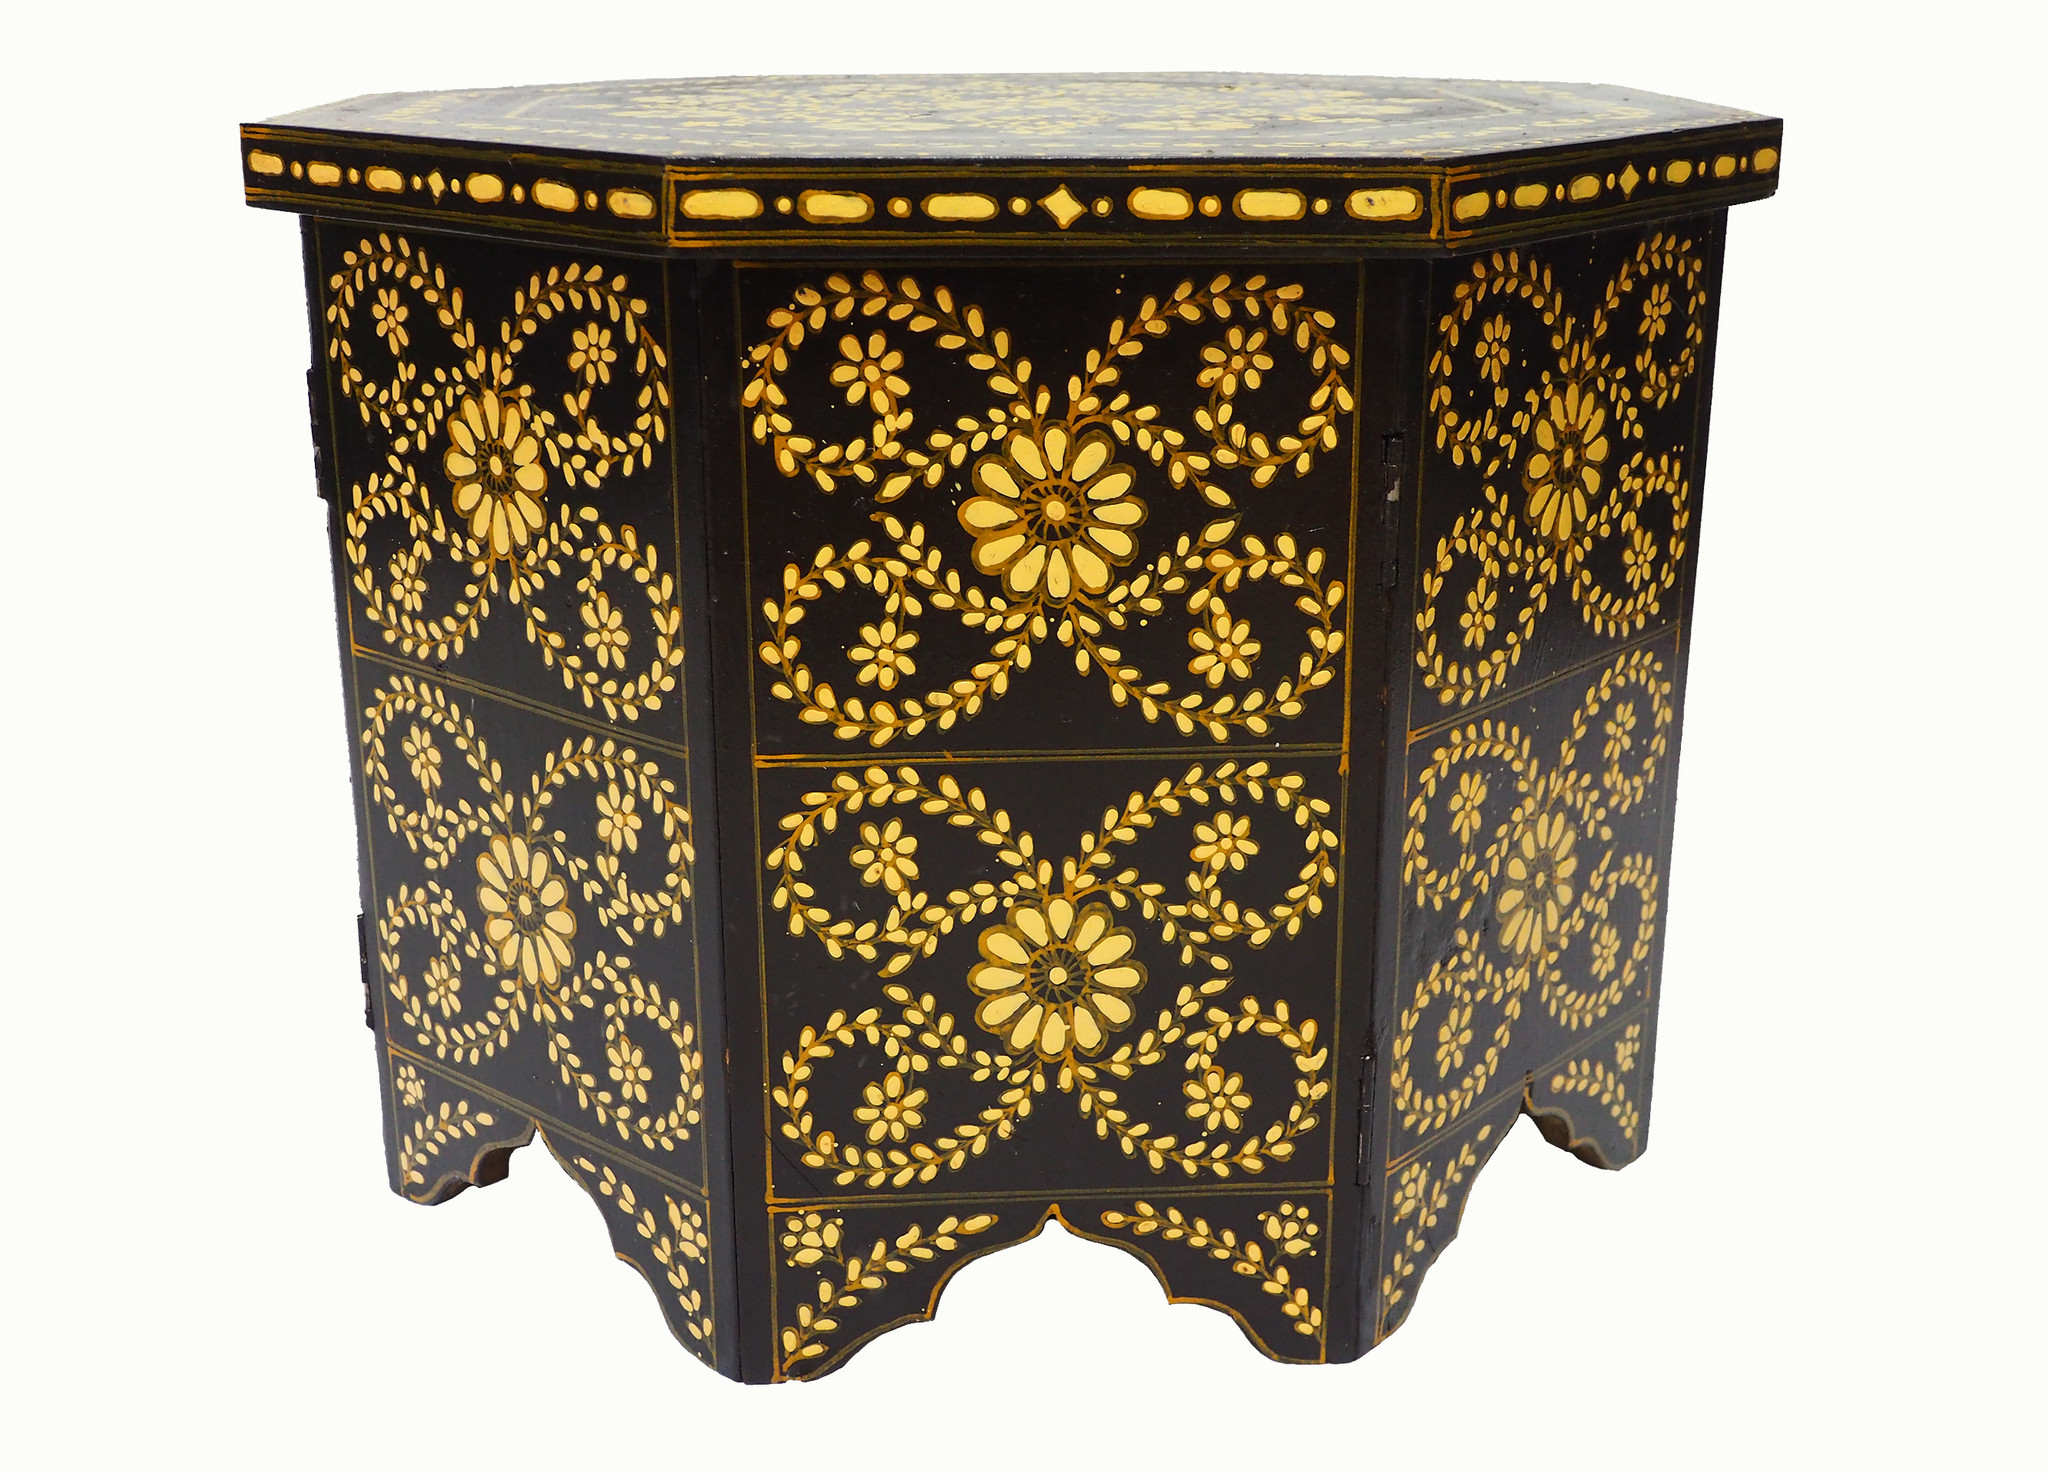 60x60 cm cm antique-look orient colonial solid wood hand painted  table Coffee Table living room table  from Afghanistan No:2